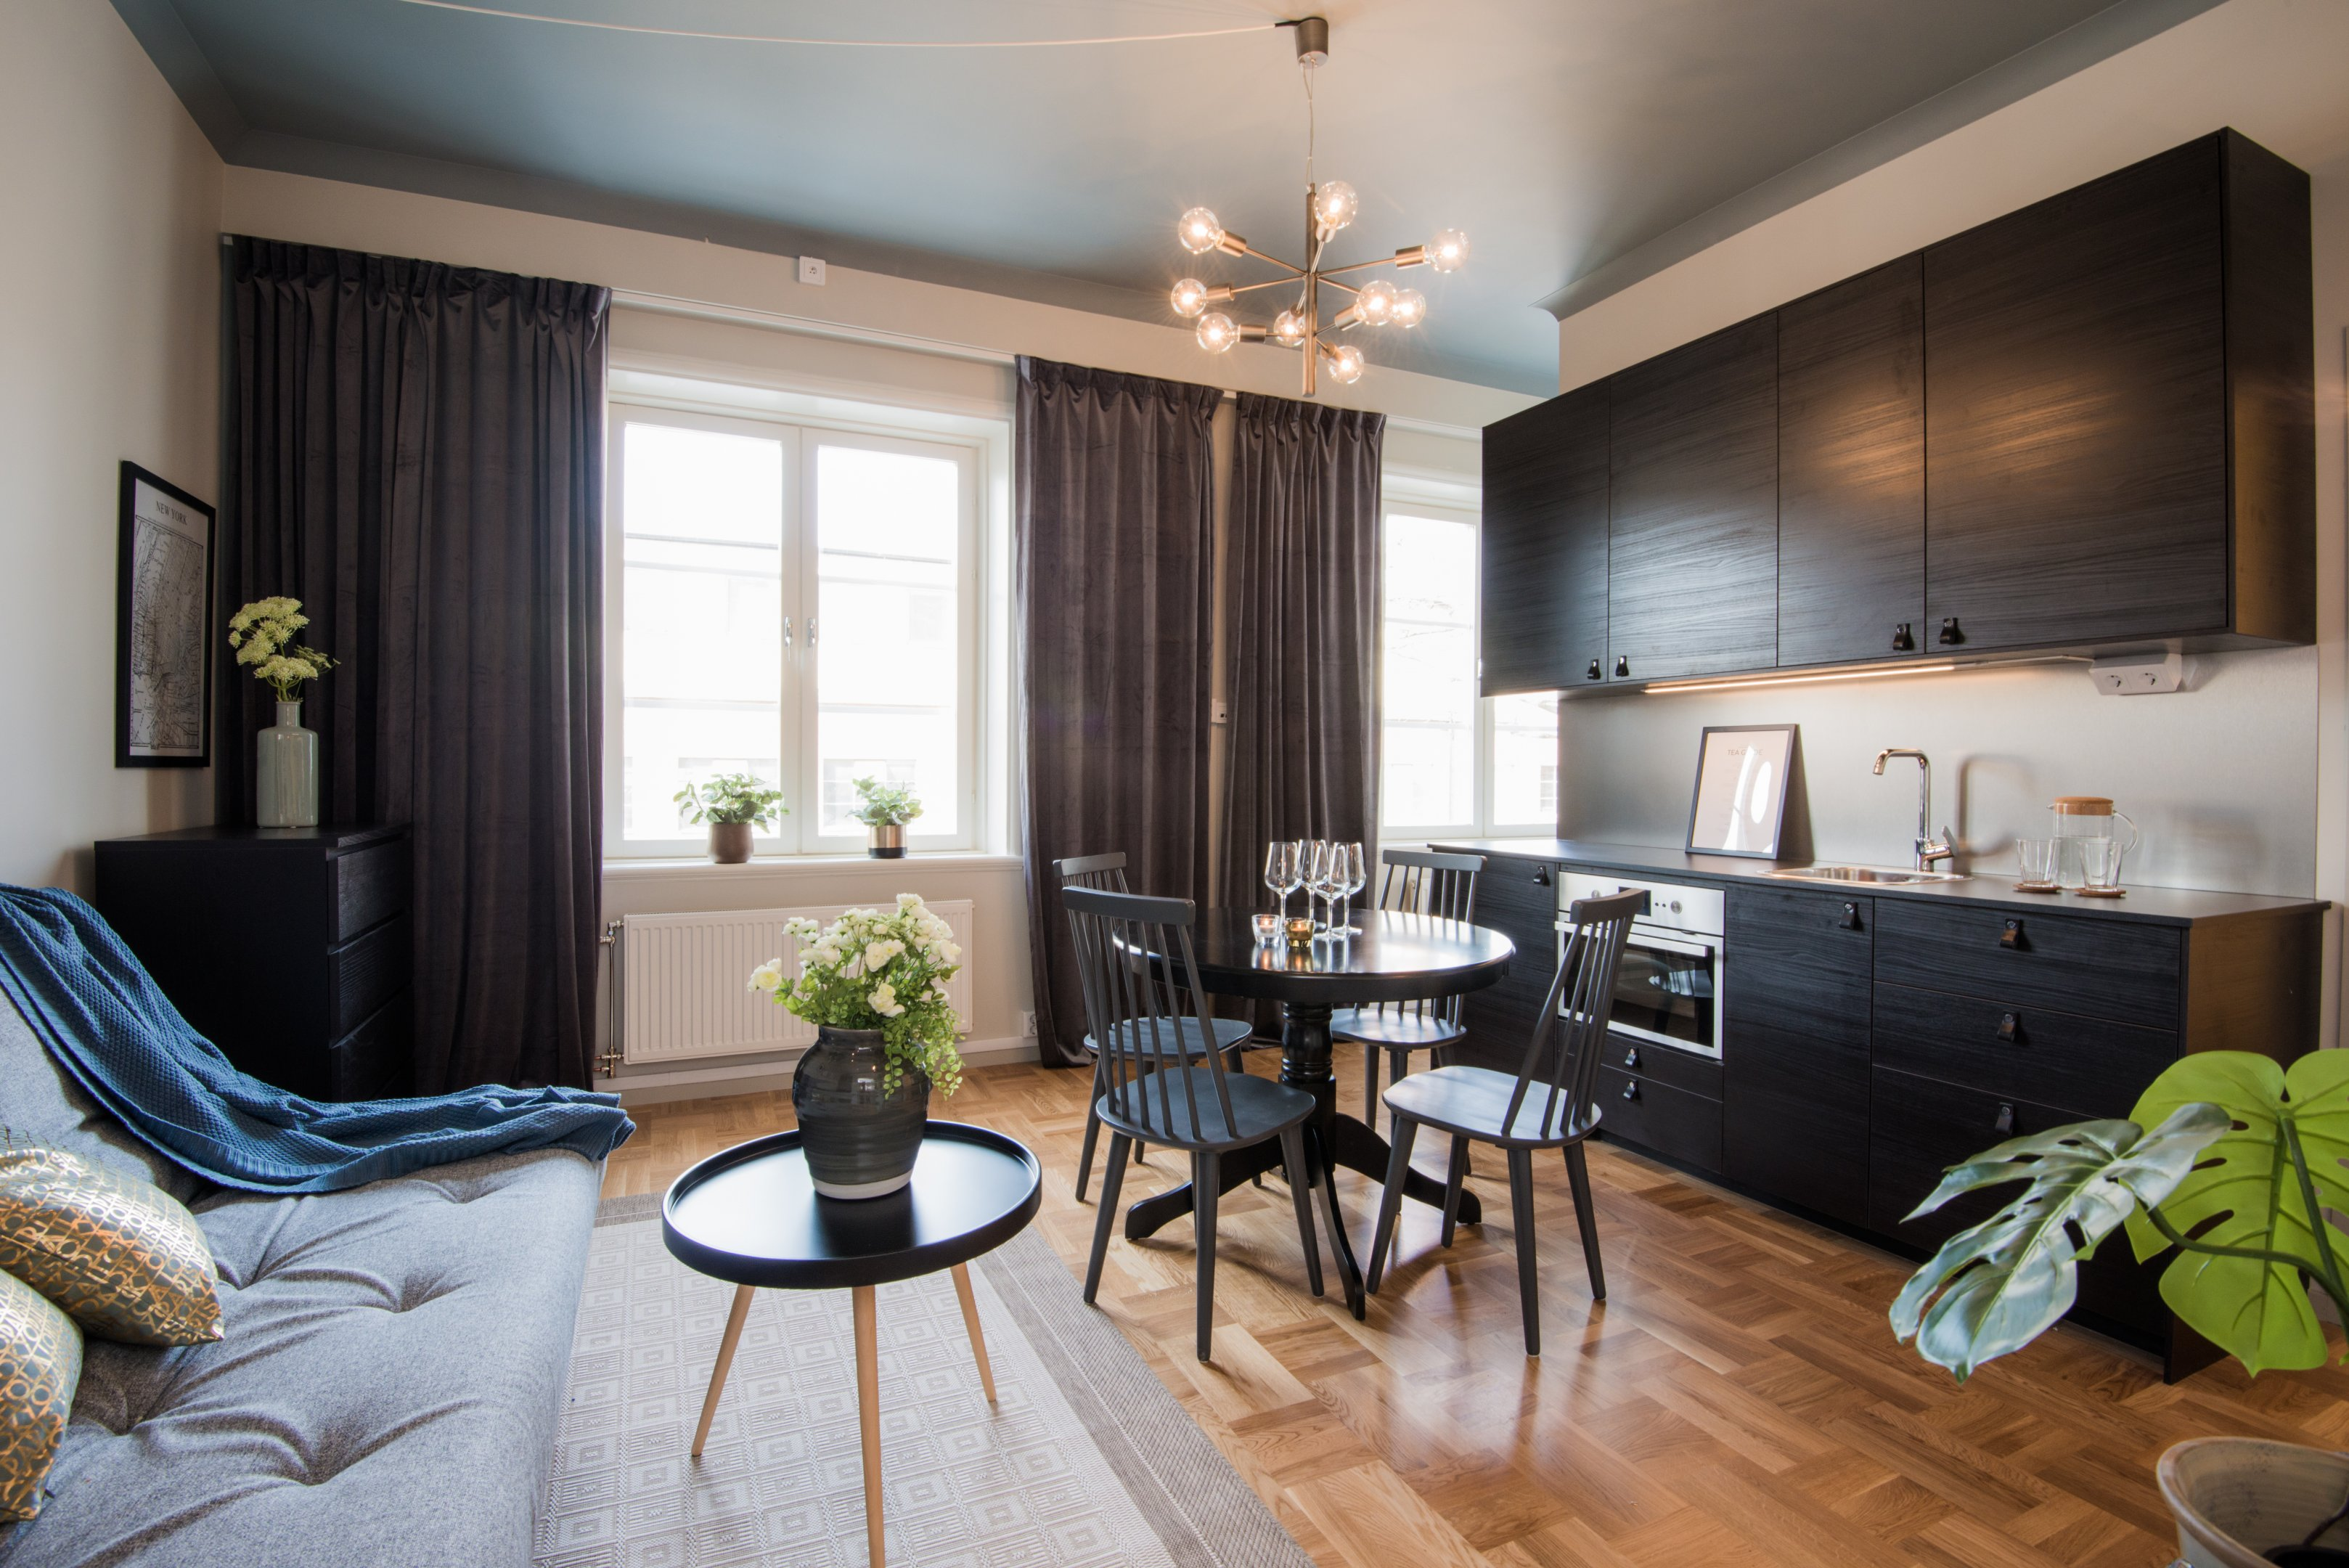 Living room at Voltavagen Apartment - Citybase Apartments